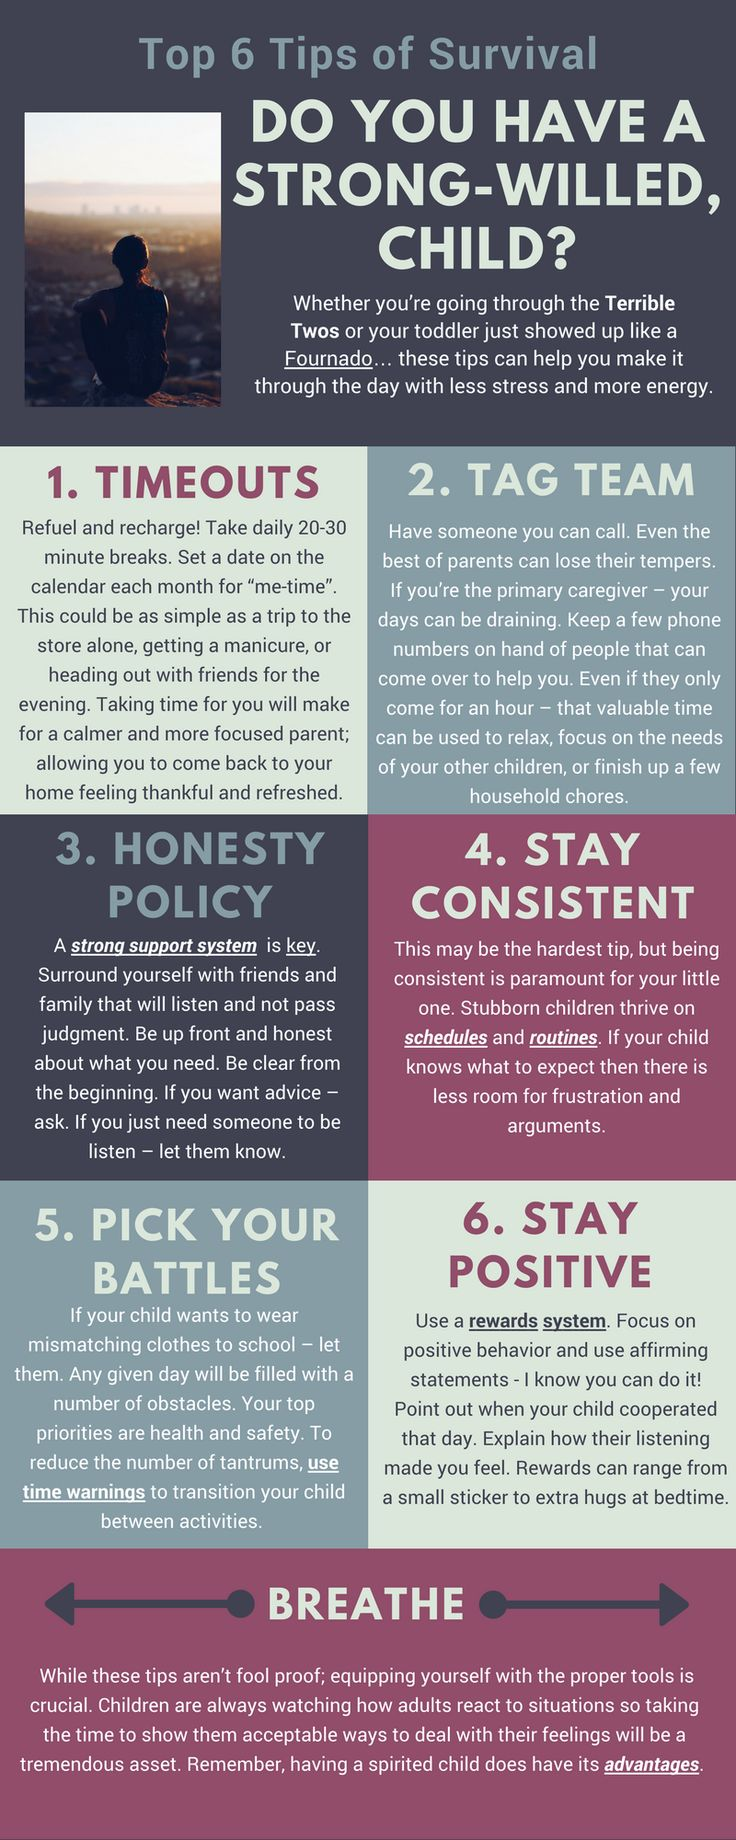 Best 25 strong willed child ideas on pinterest parenting top 6 survival tips strong willed stubborn children or child biocorpaavc